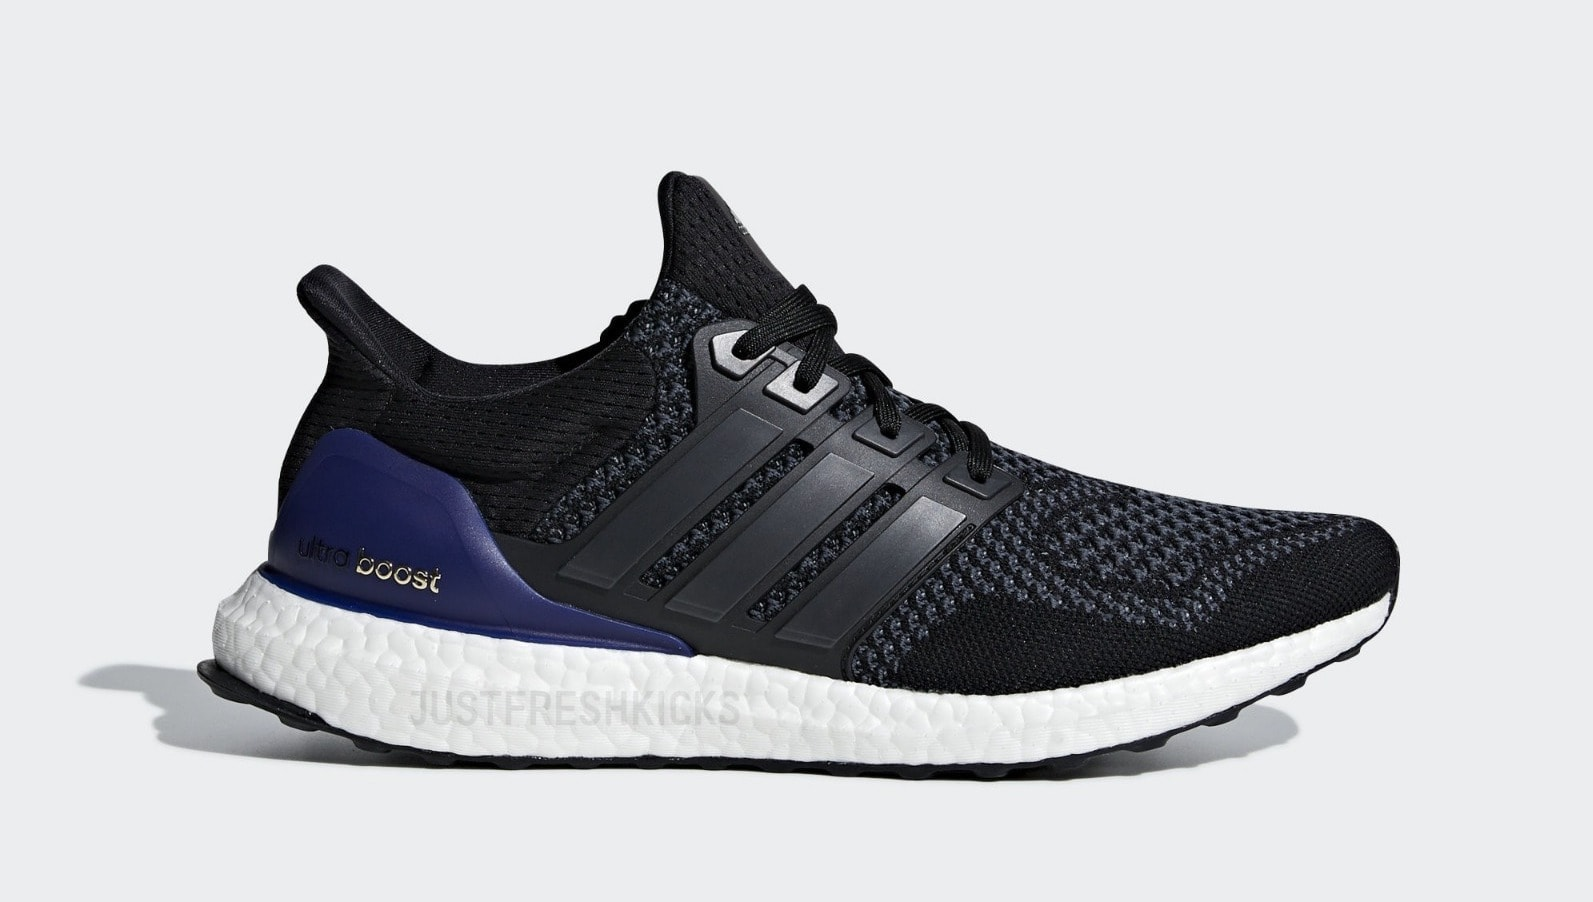 promo code 96f1a c3267 The adidas Ultra Boost Returns in its Original 1.0 Primeknit Pattern This  Winter